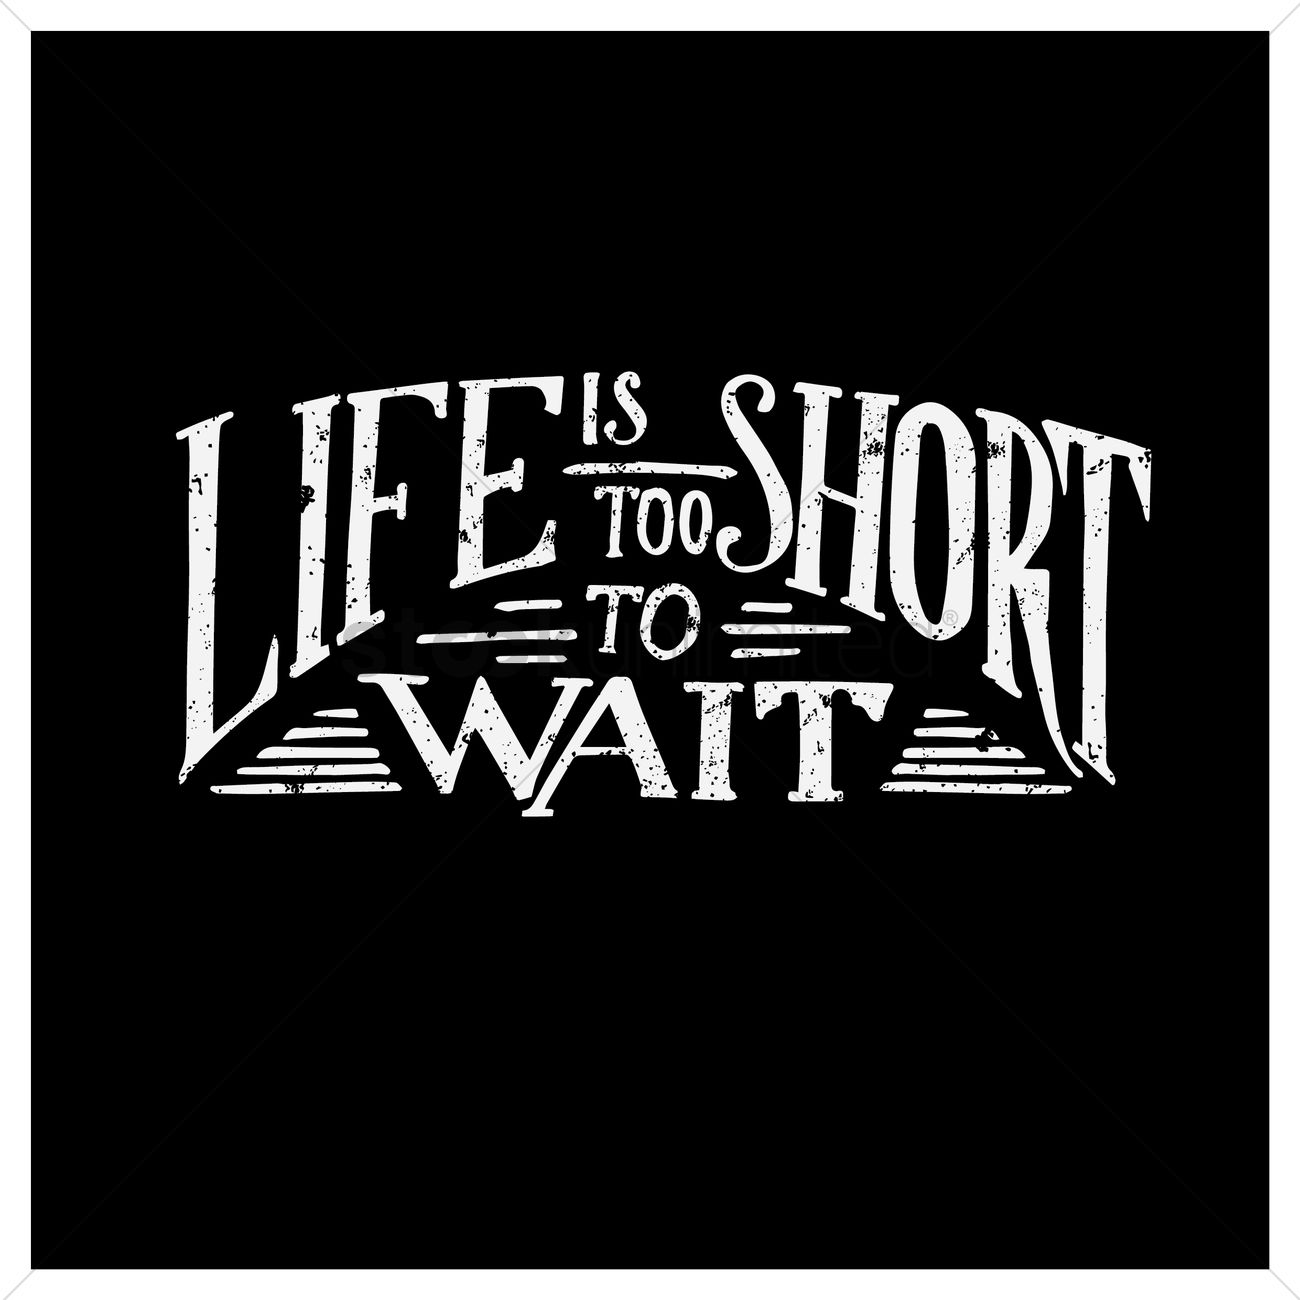 life is too short to wait quote vector image 1571041